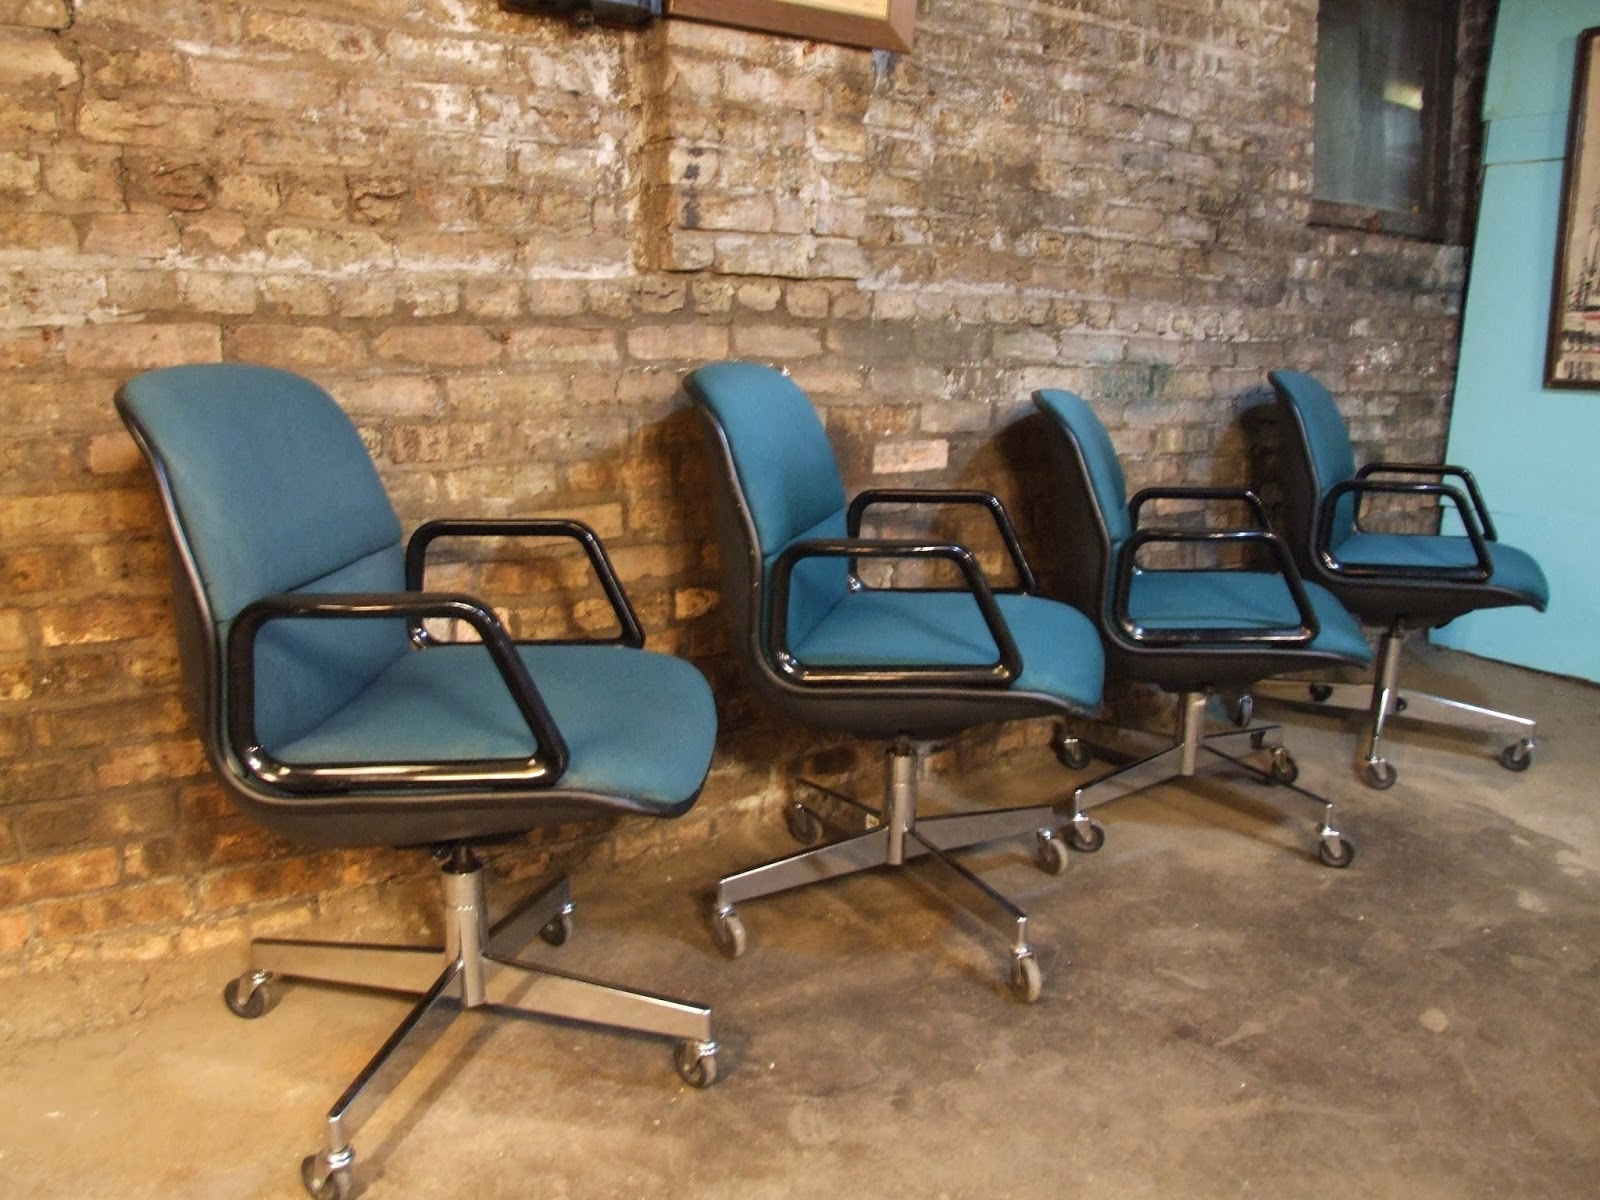 allsteel relate side chair white covers with black sash mid century chicago set of 4 desk chairs